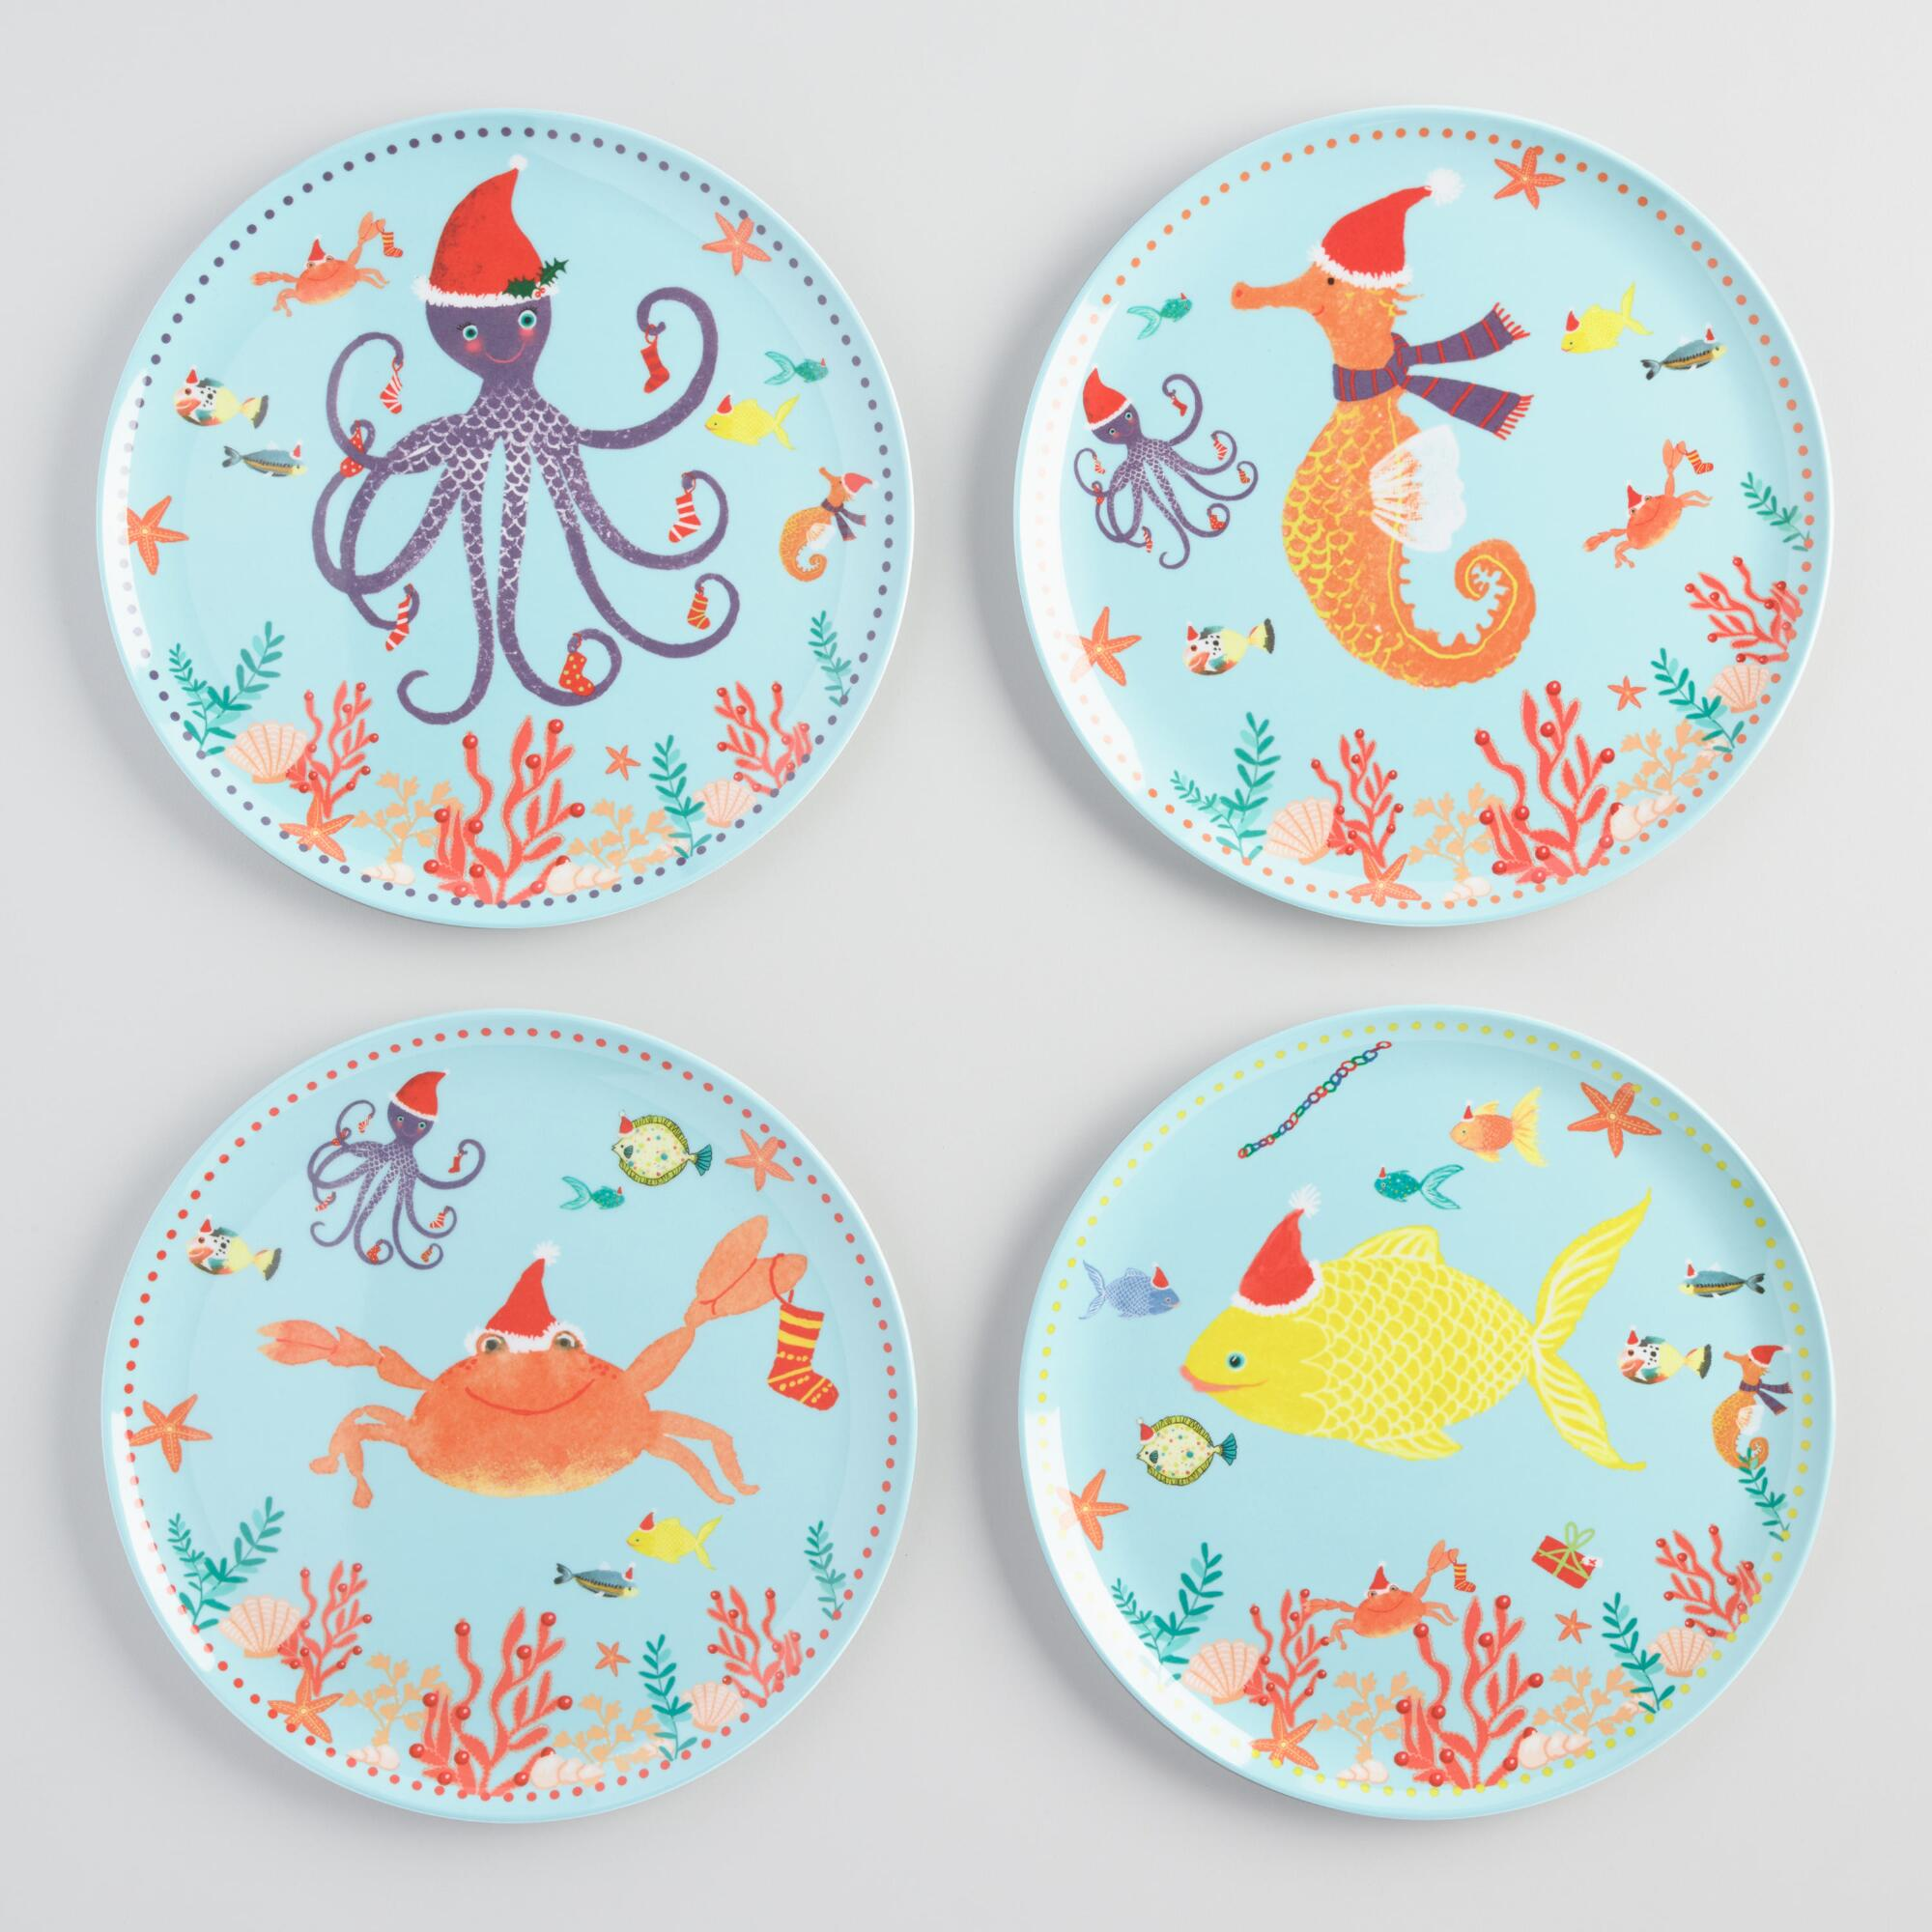 Holiday Sea Creatures Melamine Dinner Plates Set of 4 by World Market